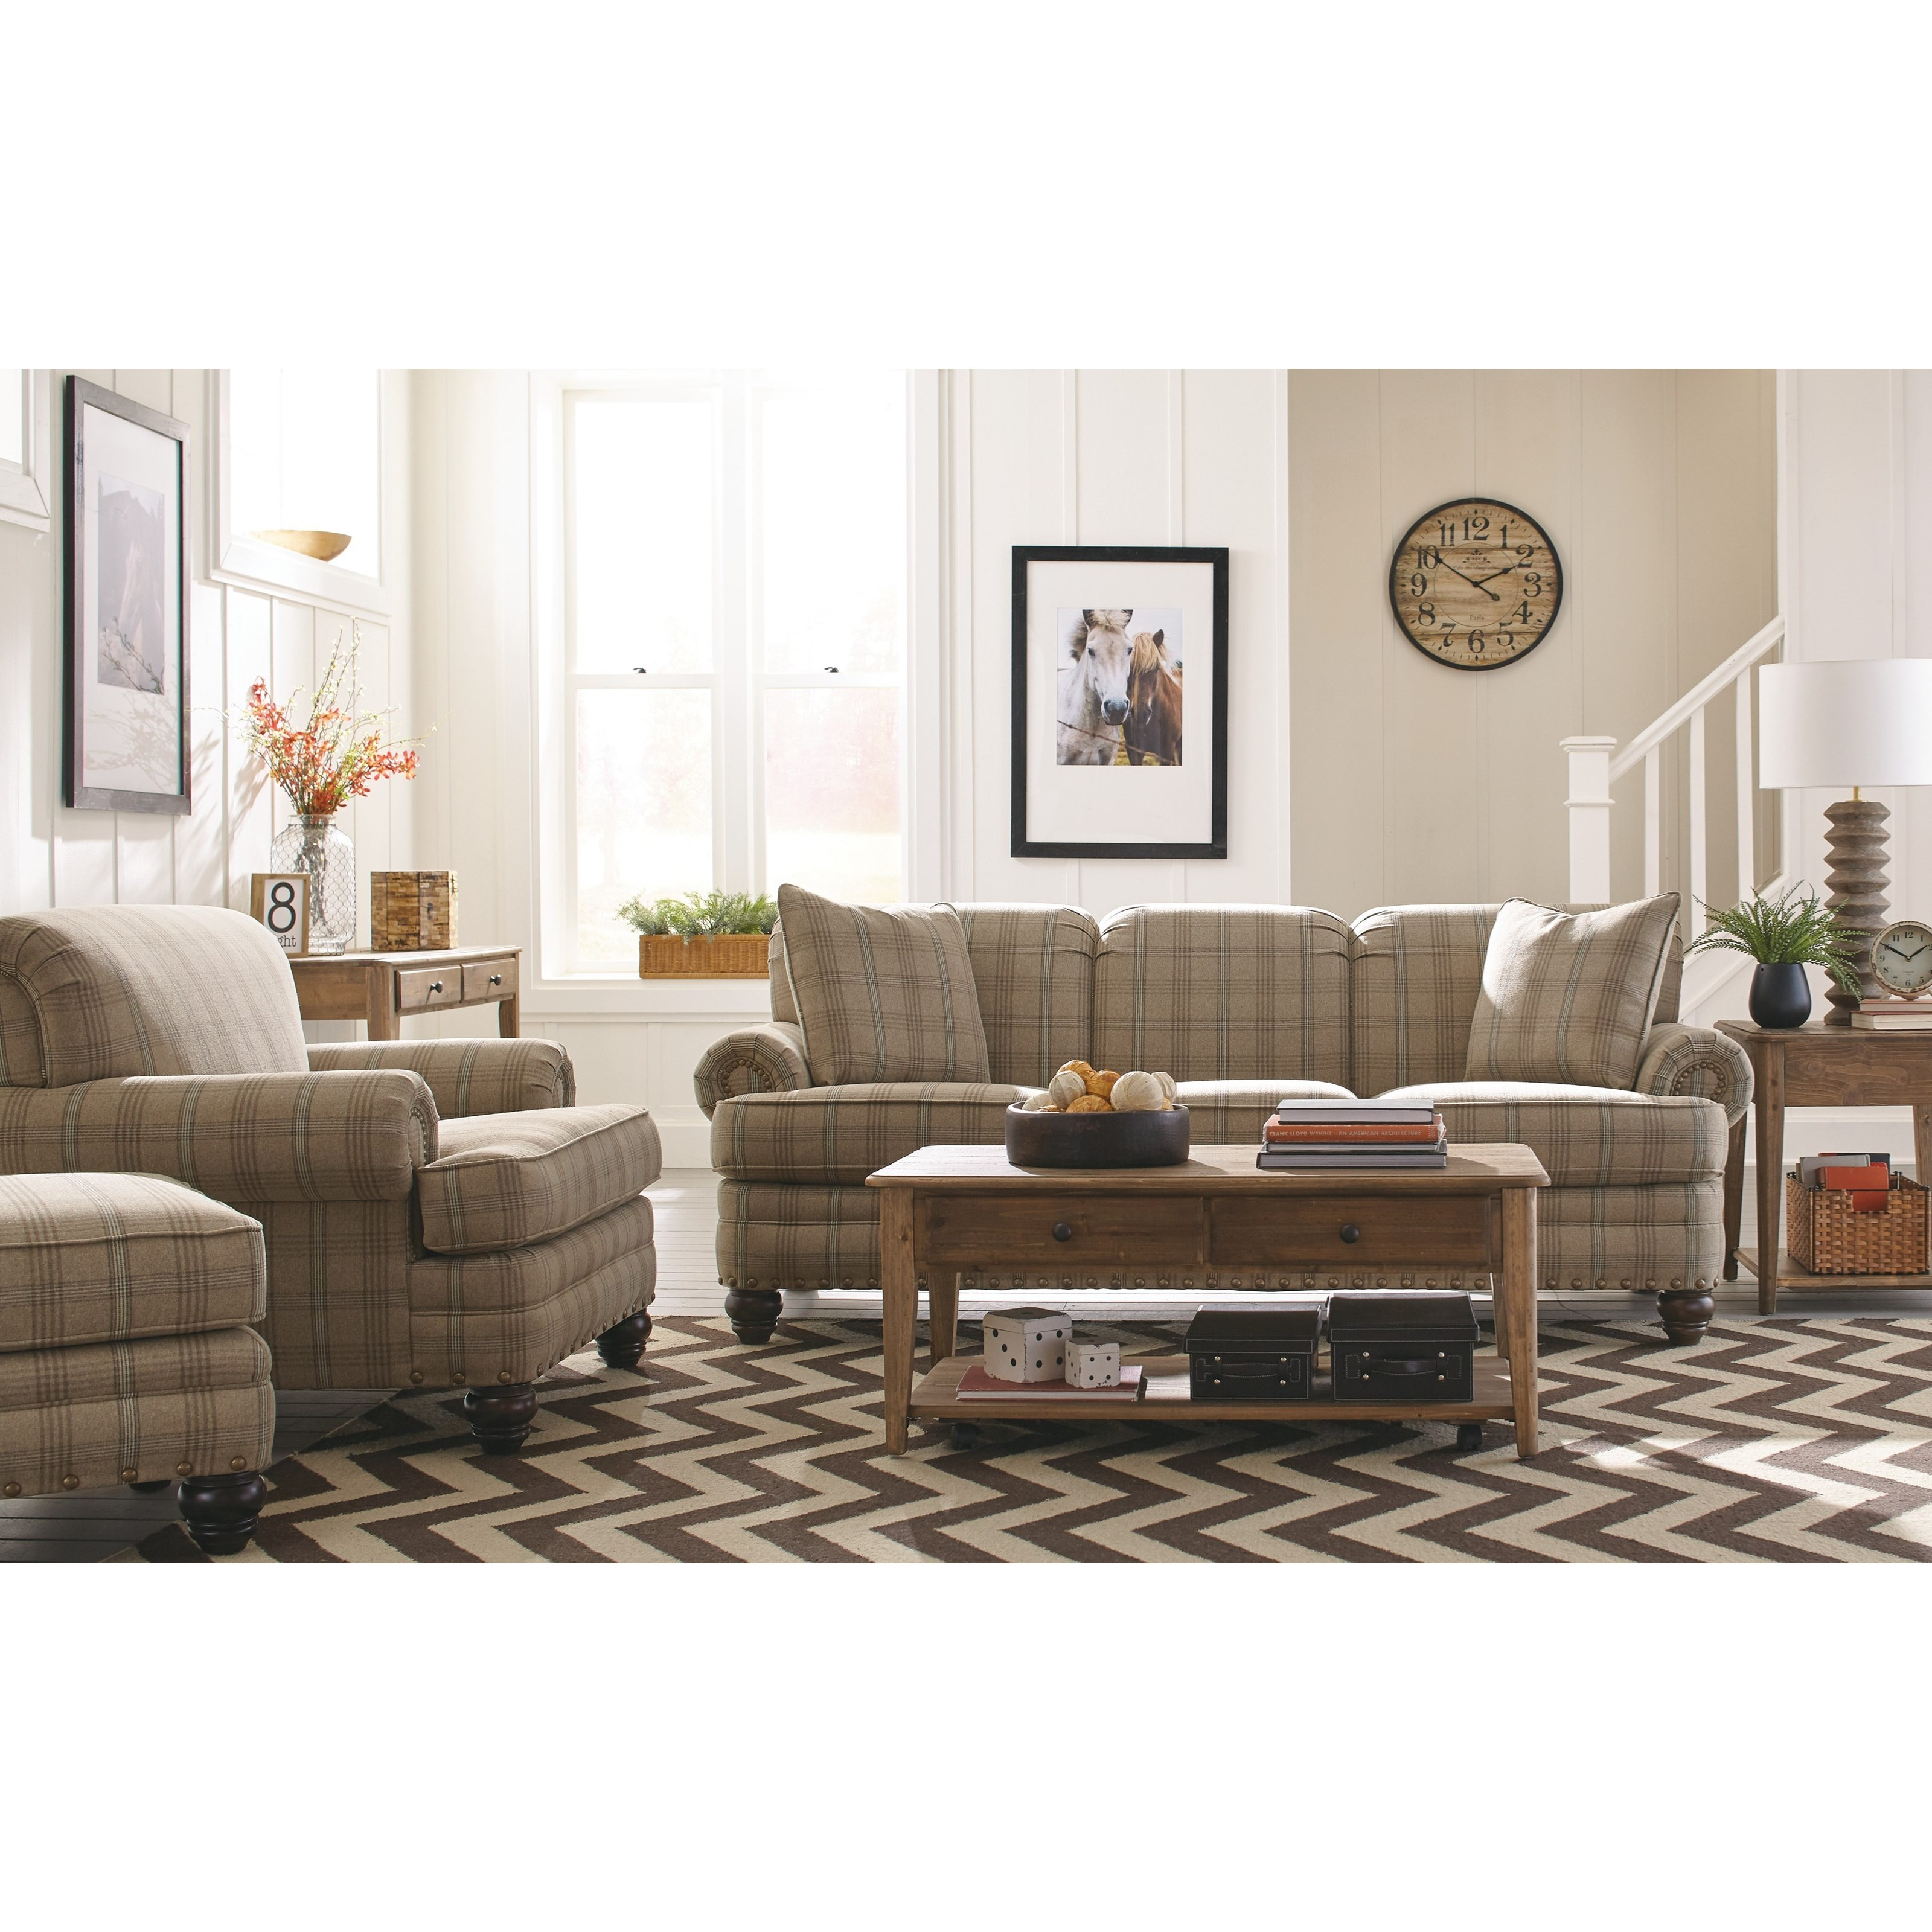 7281 Living Room Group by Craftmaster at Lagniappe Home Store